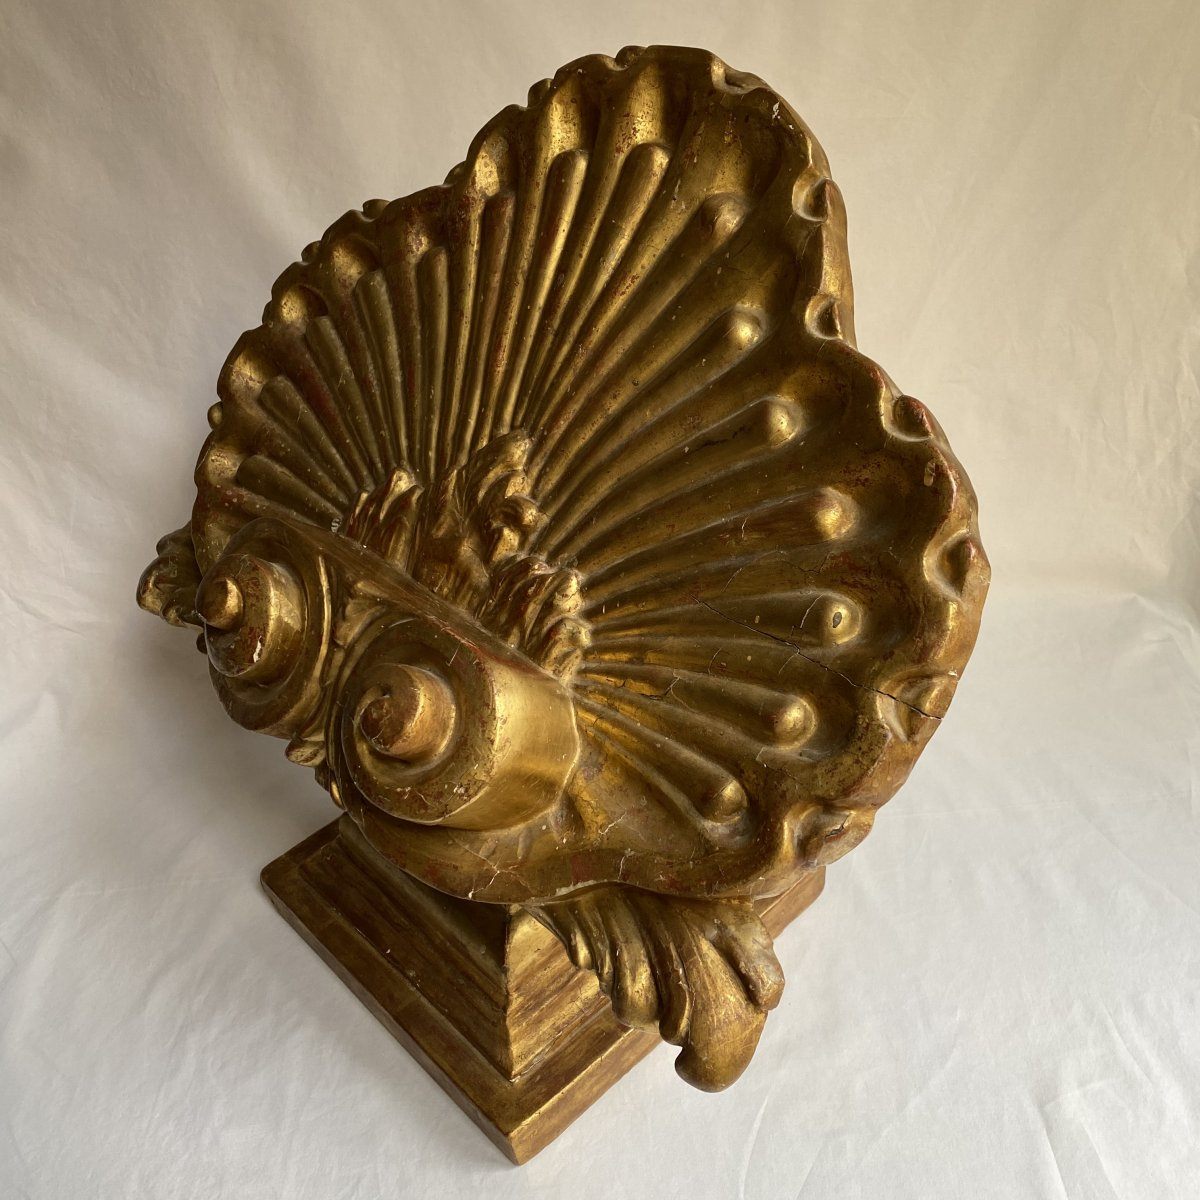 Large Lectern In The Shape Of A Shell - Golden Wood - Italy XVII - XVIII-photo-4